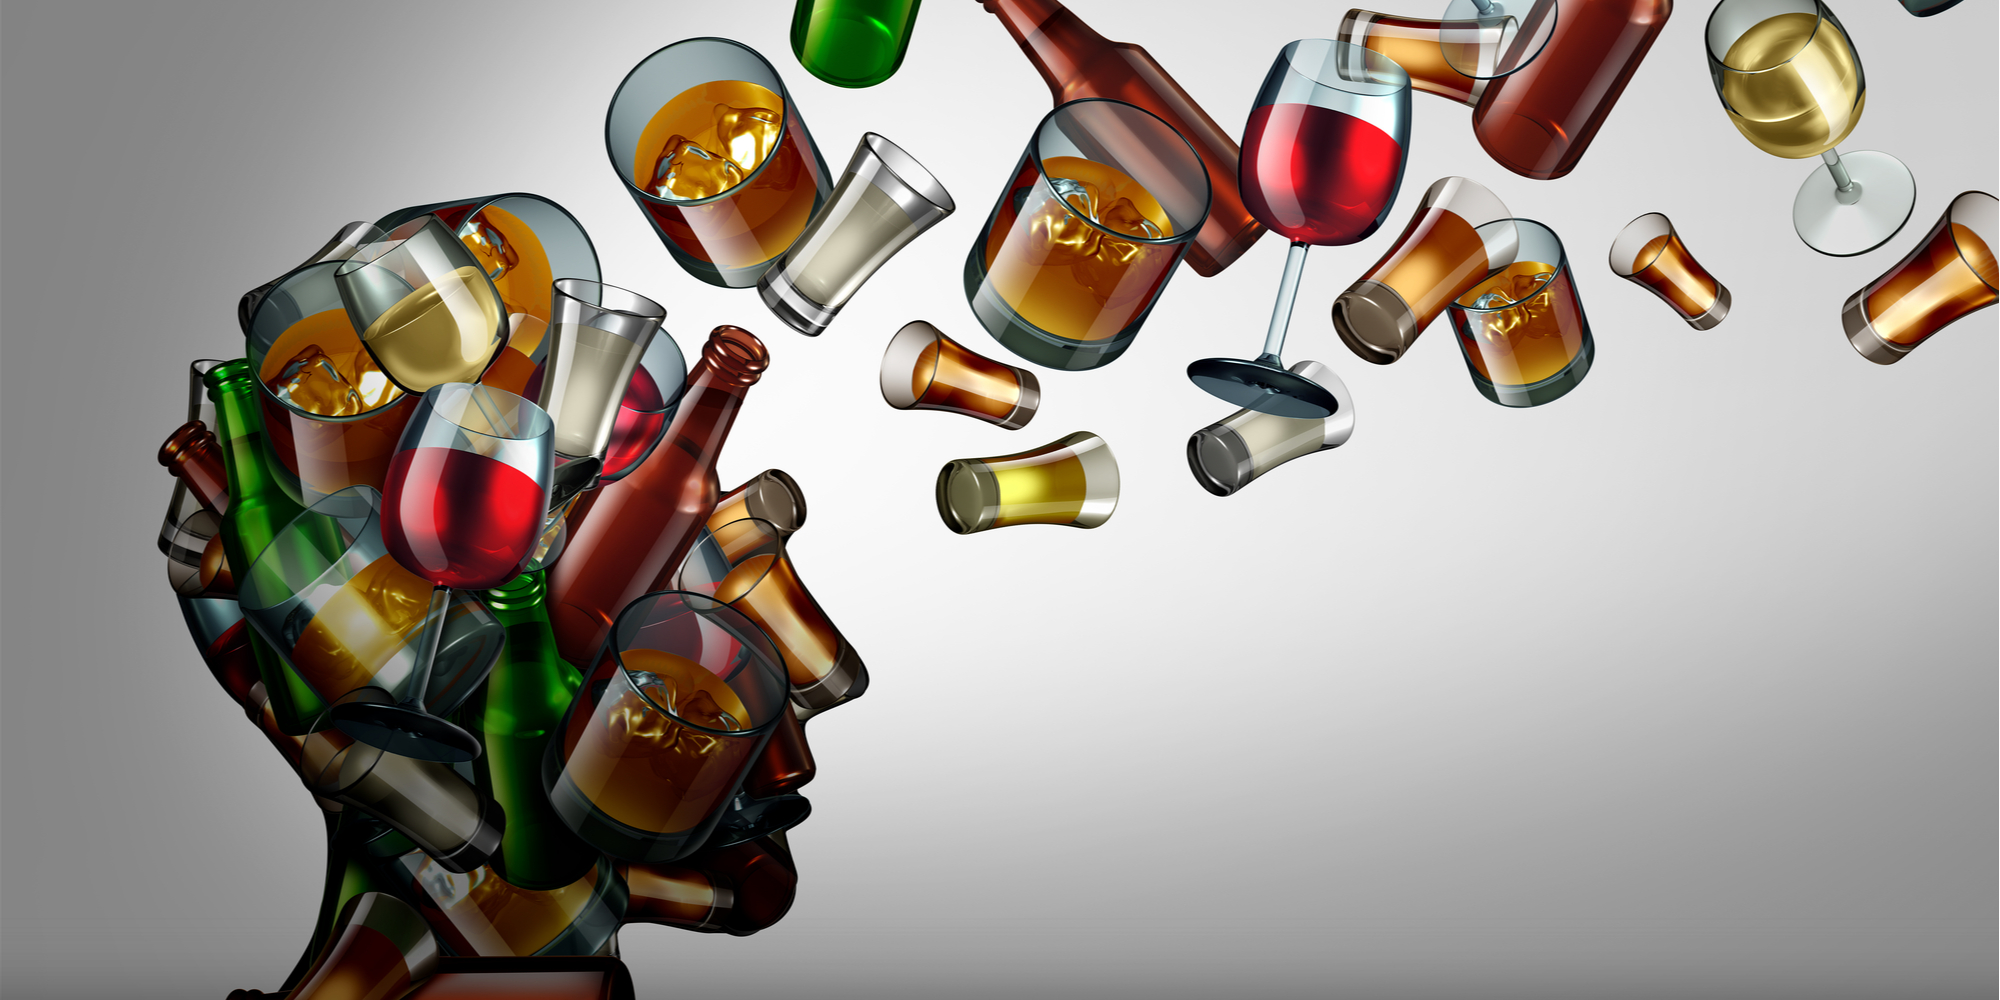 can alcohol cause cancer